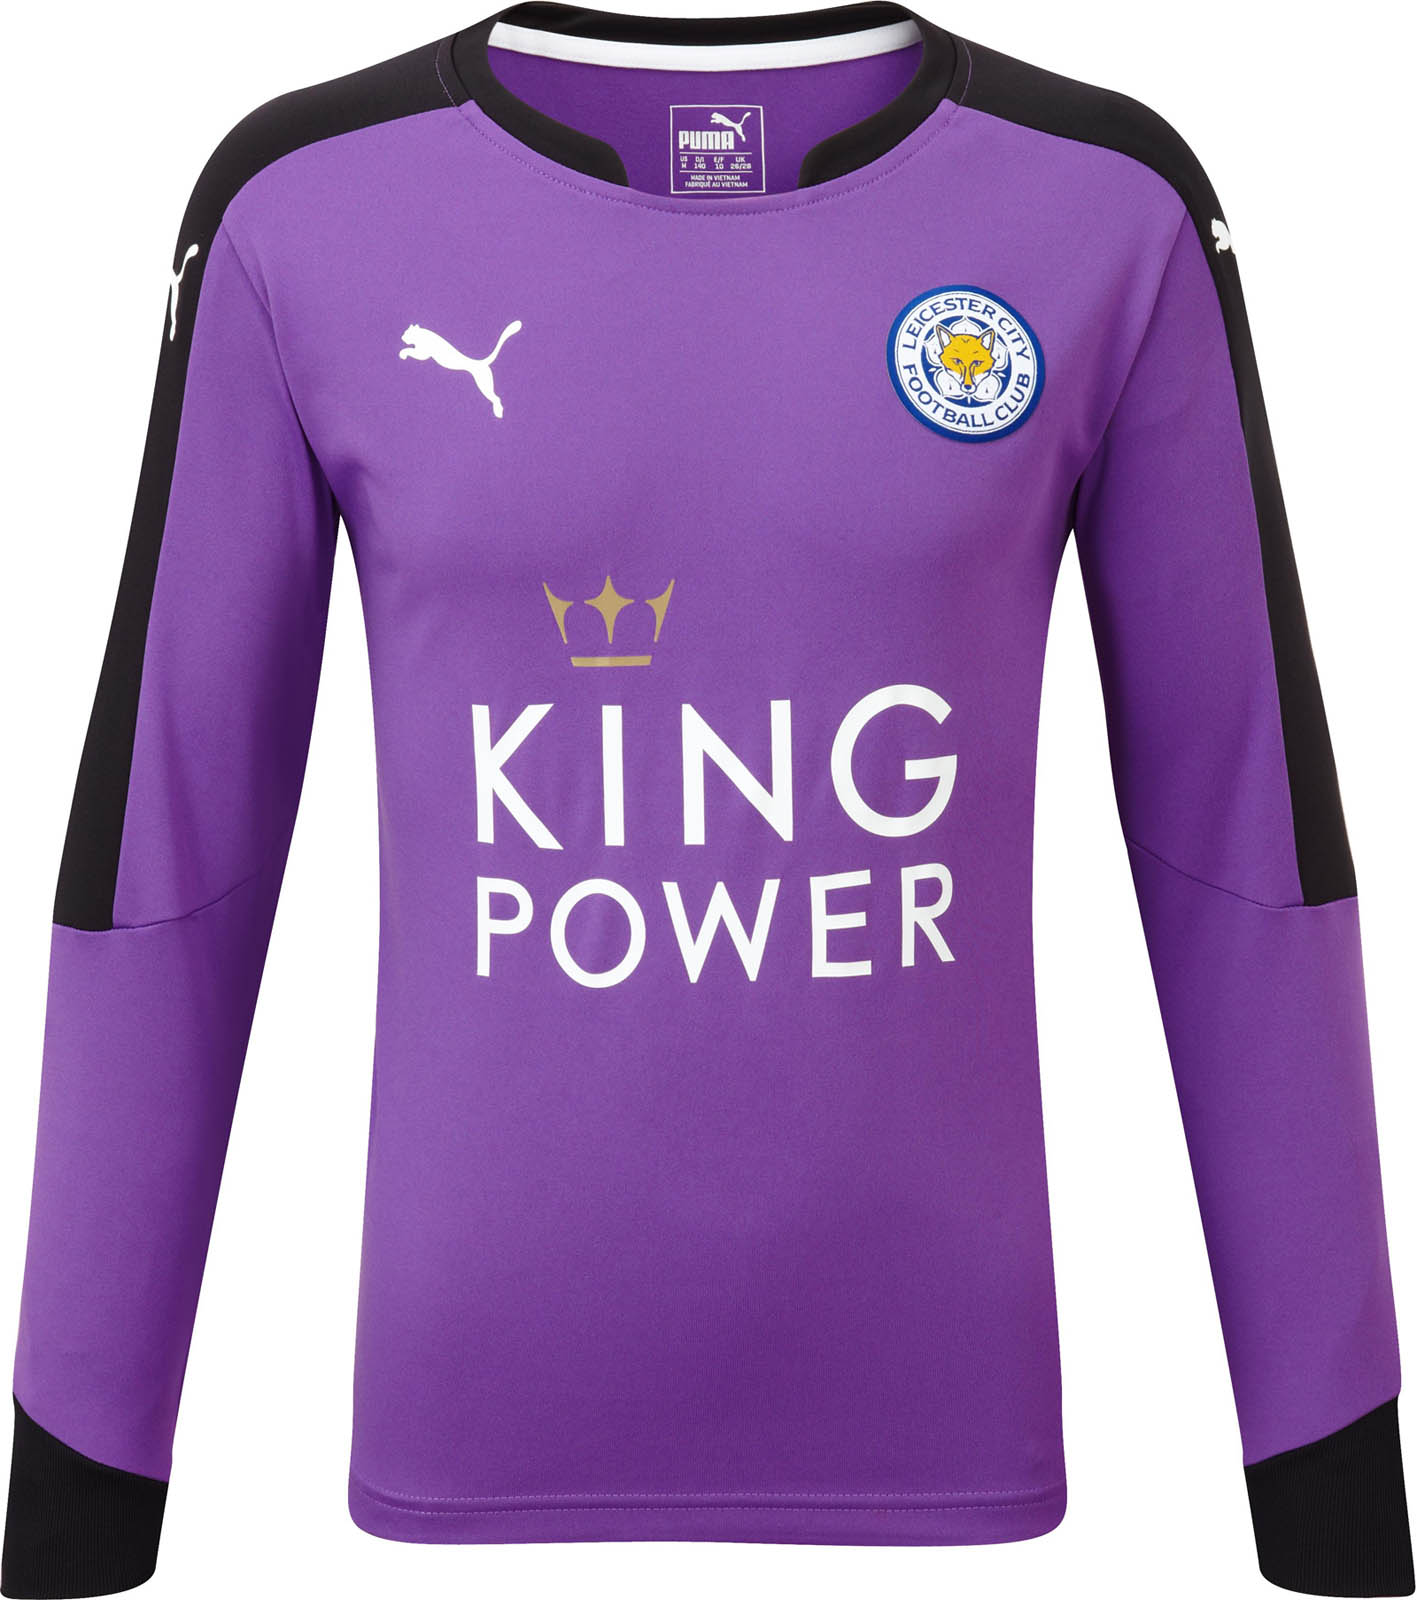 Leicester City 15-16 Kits Released - Footy Headlines